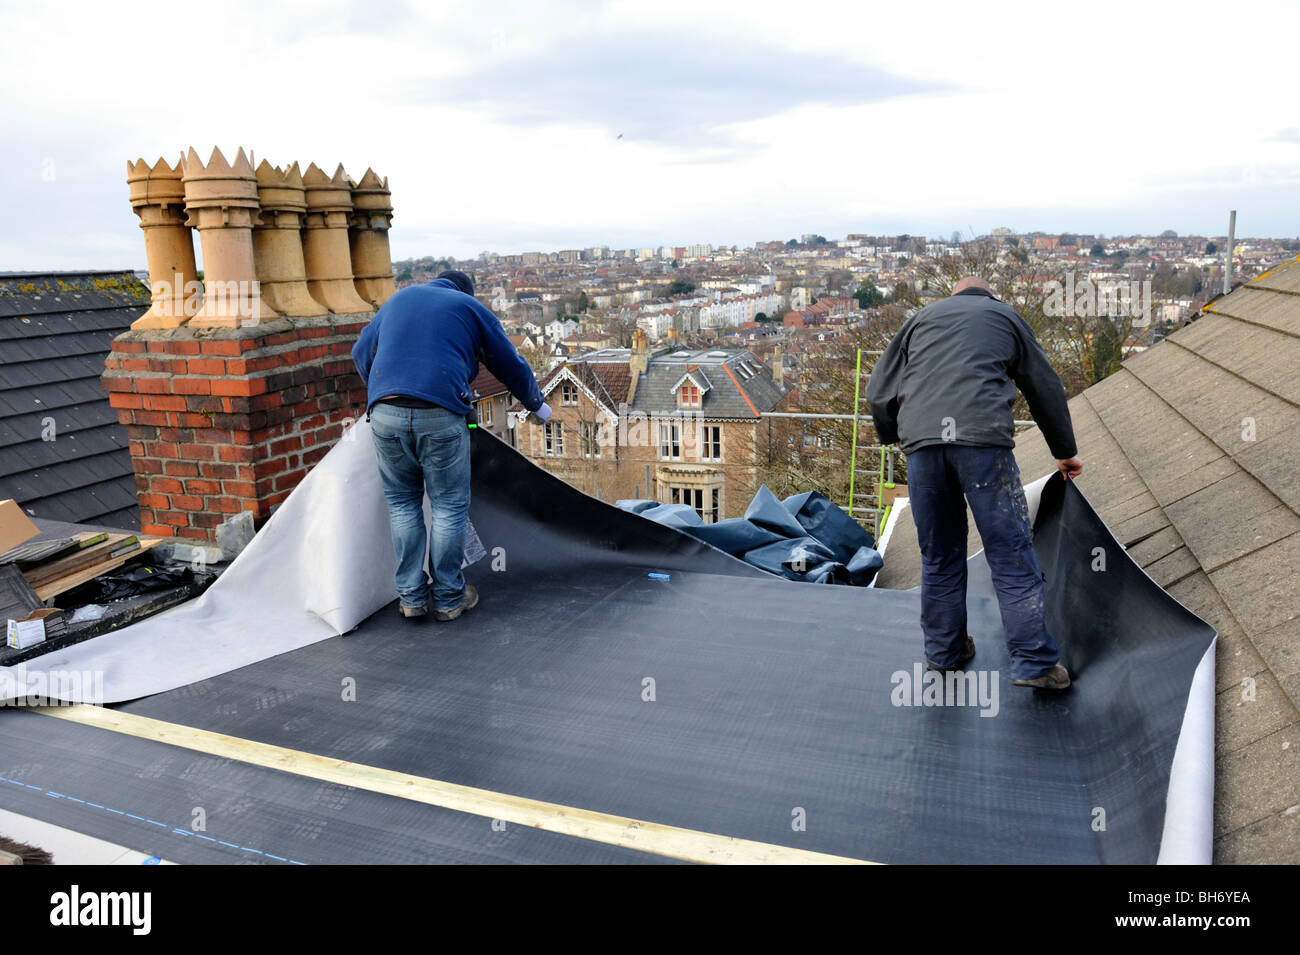 Roofers Repairing Flat Roof With New EPDM Rubber Membrane On House